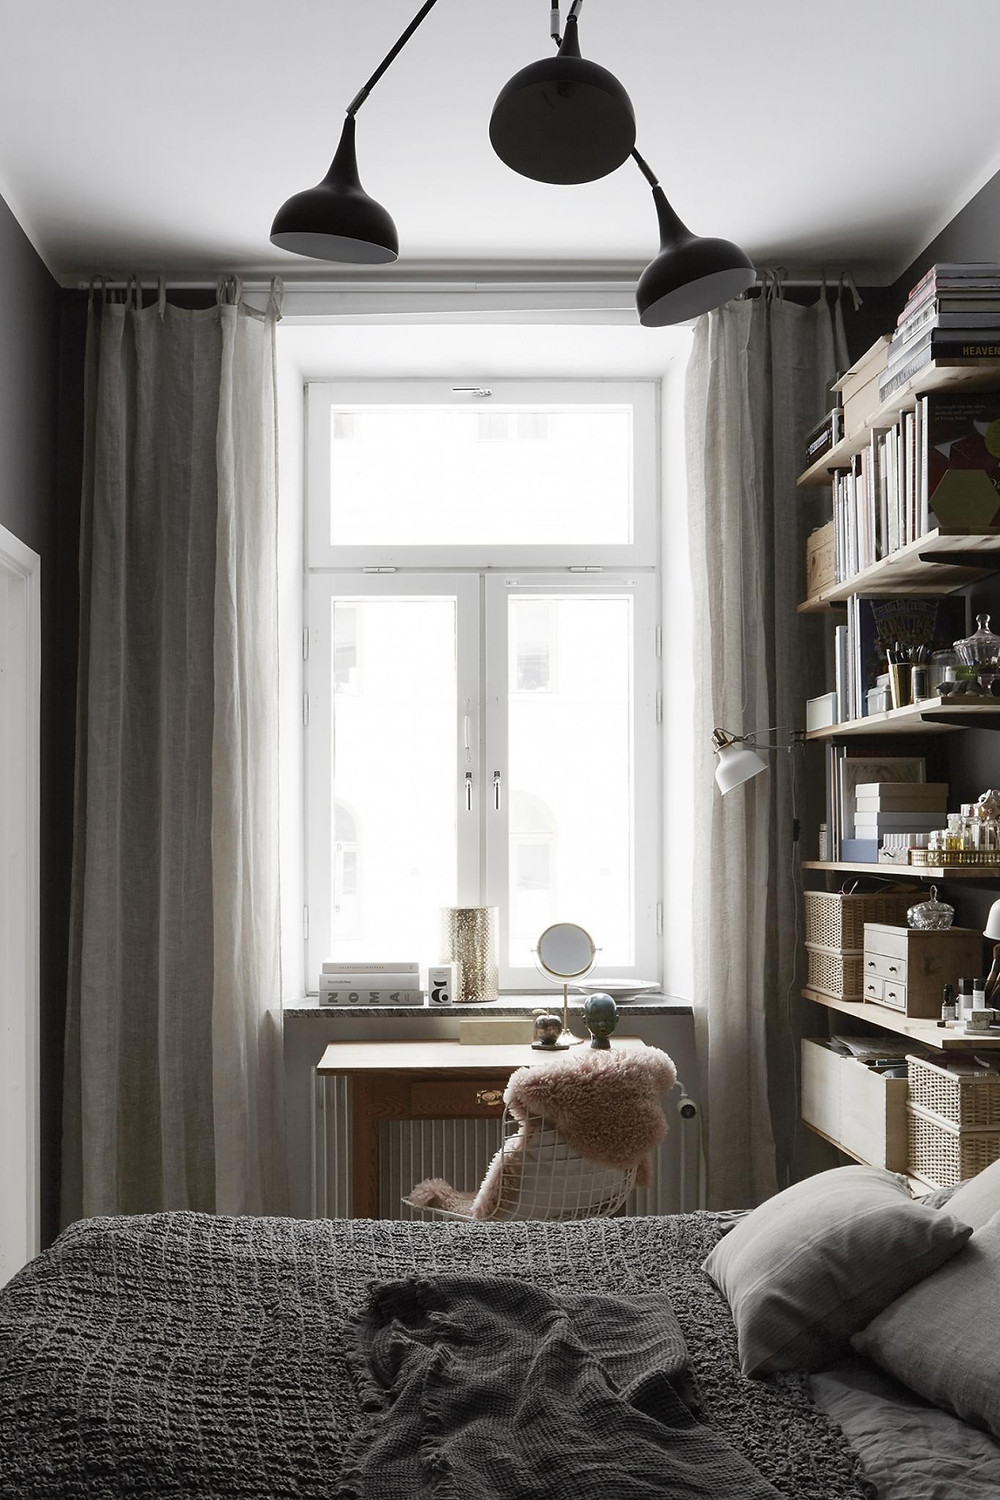 Scandinavian interior design bedroom with black wall and black triple pendant light